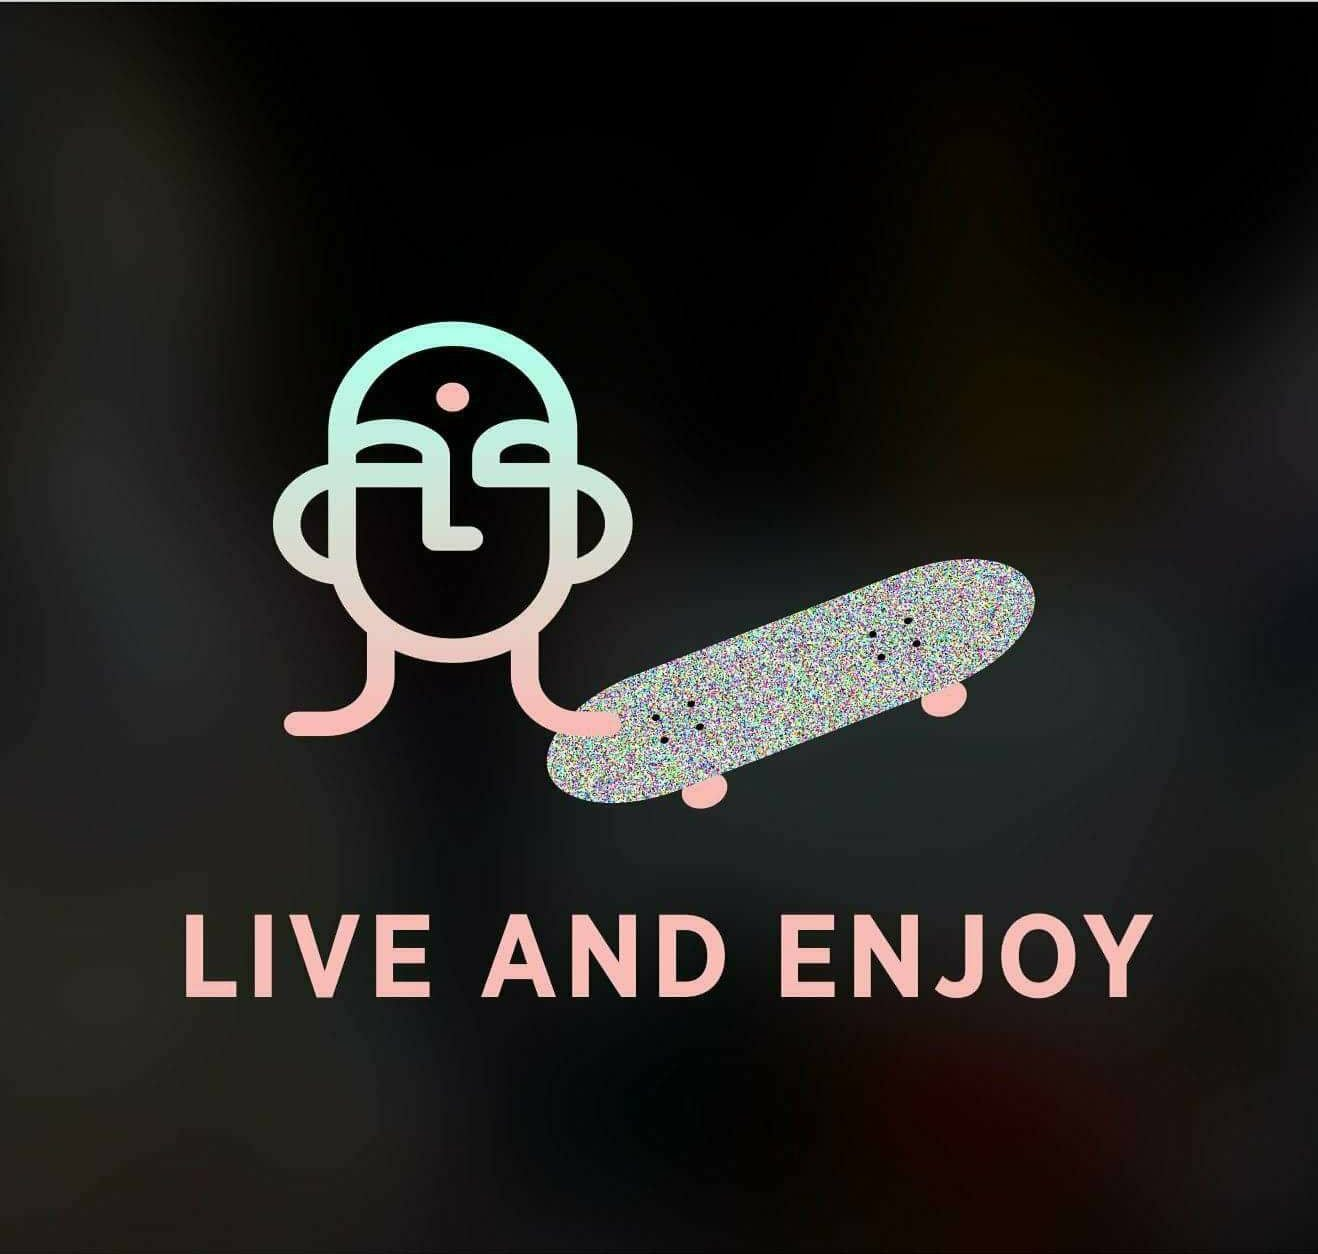 liveandenjoymovement.com